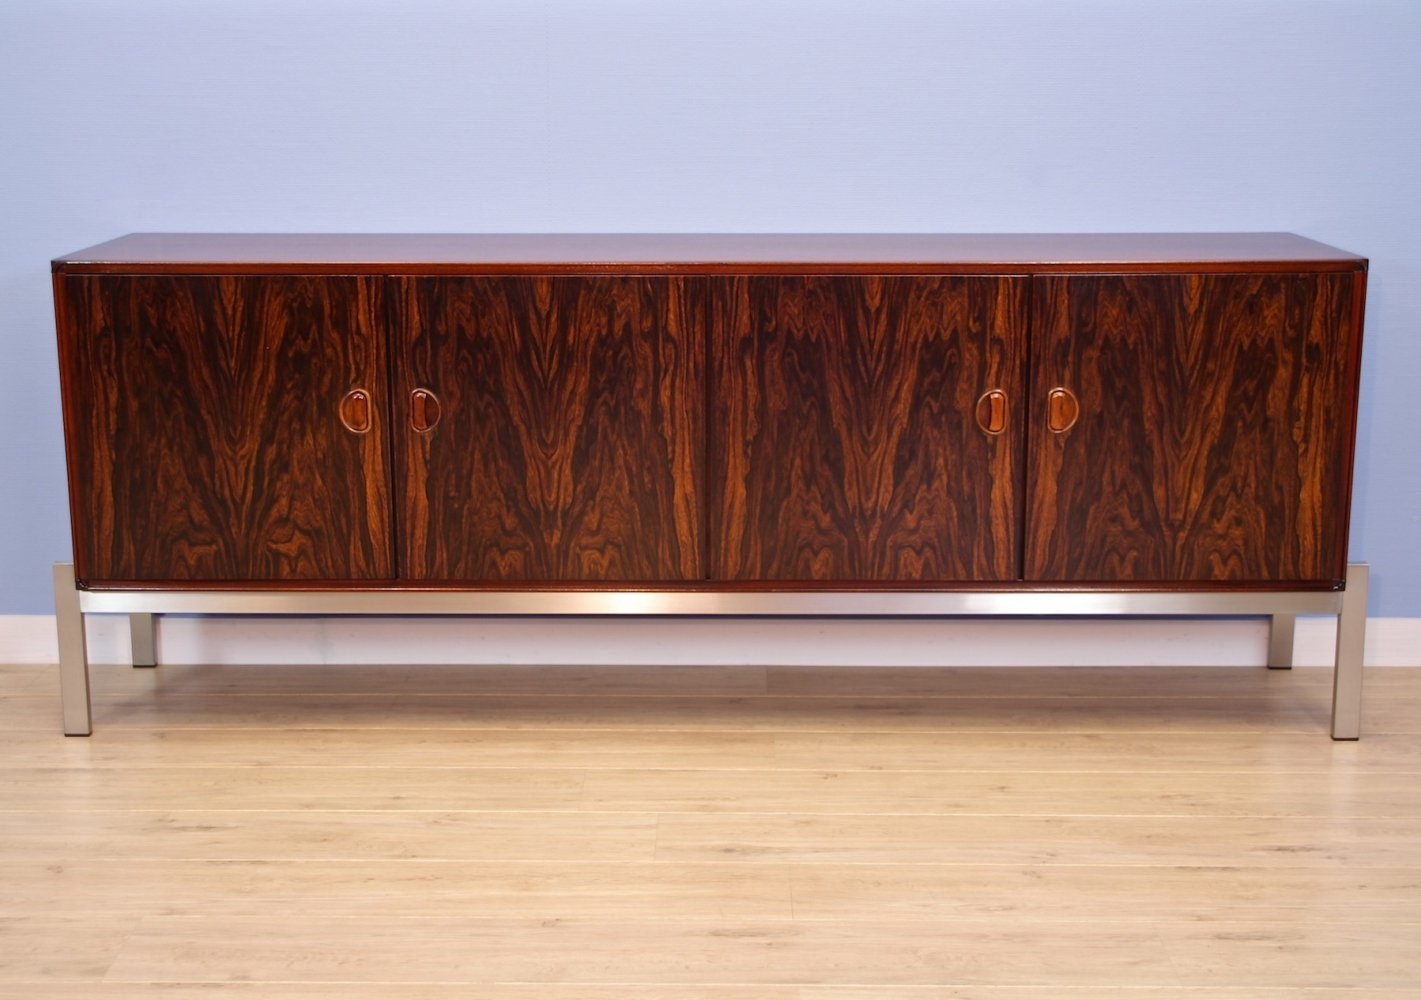 Dutch sideboard in rosewood by Kho Liang Ie for Fristho, 1960s